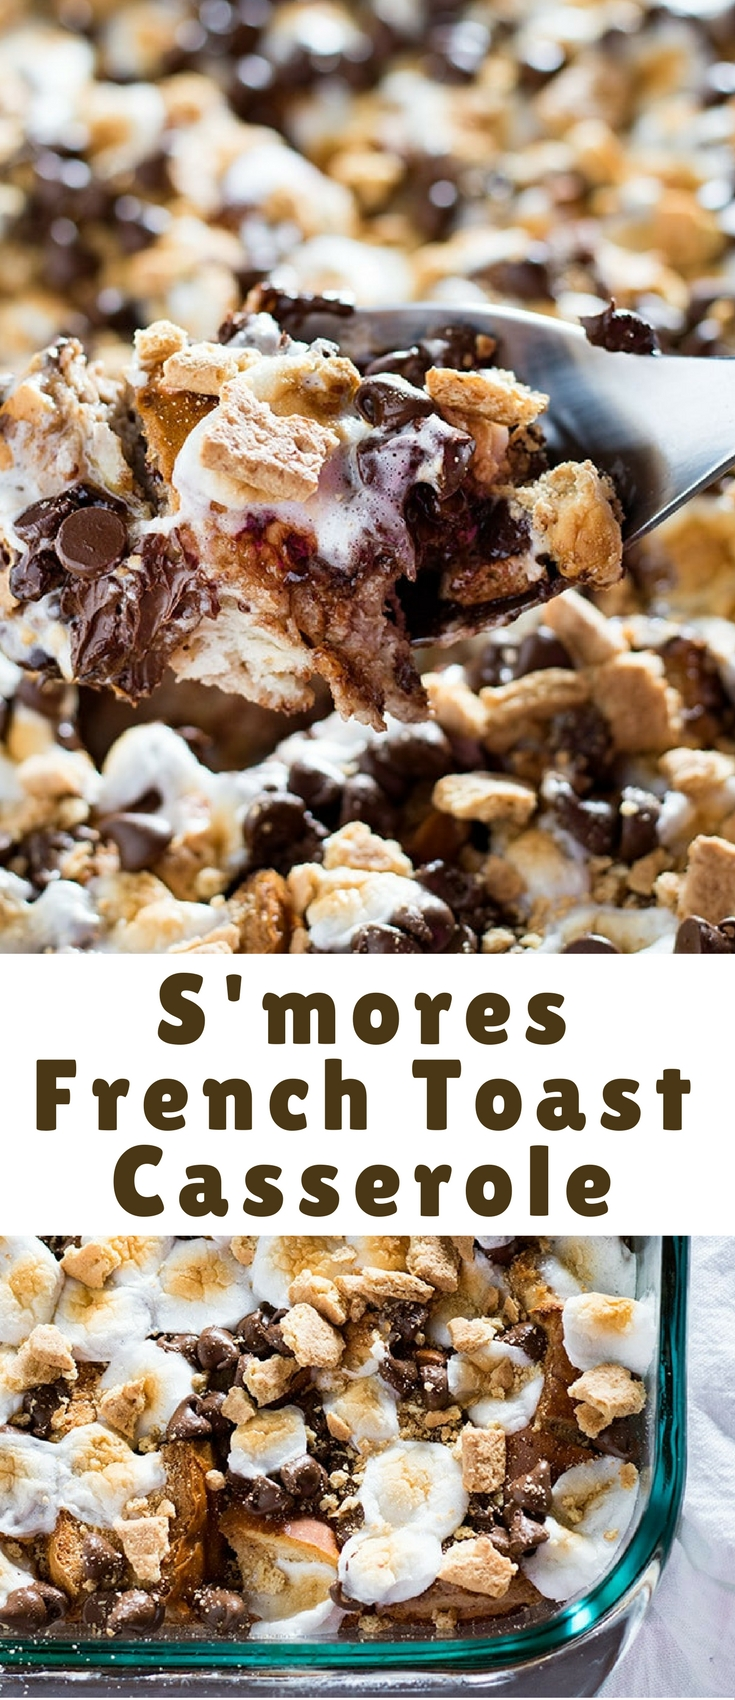 S'mores French Toast Casserole – A super decadent chocolate french toast casserole that can be made ahead! This french toast is full of chocolate chips, toasted marshmallows, and sprinkled with graham crackers to make it taste just like a s'more!